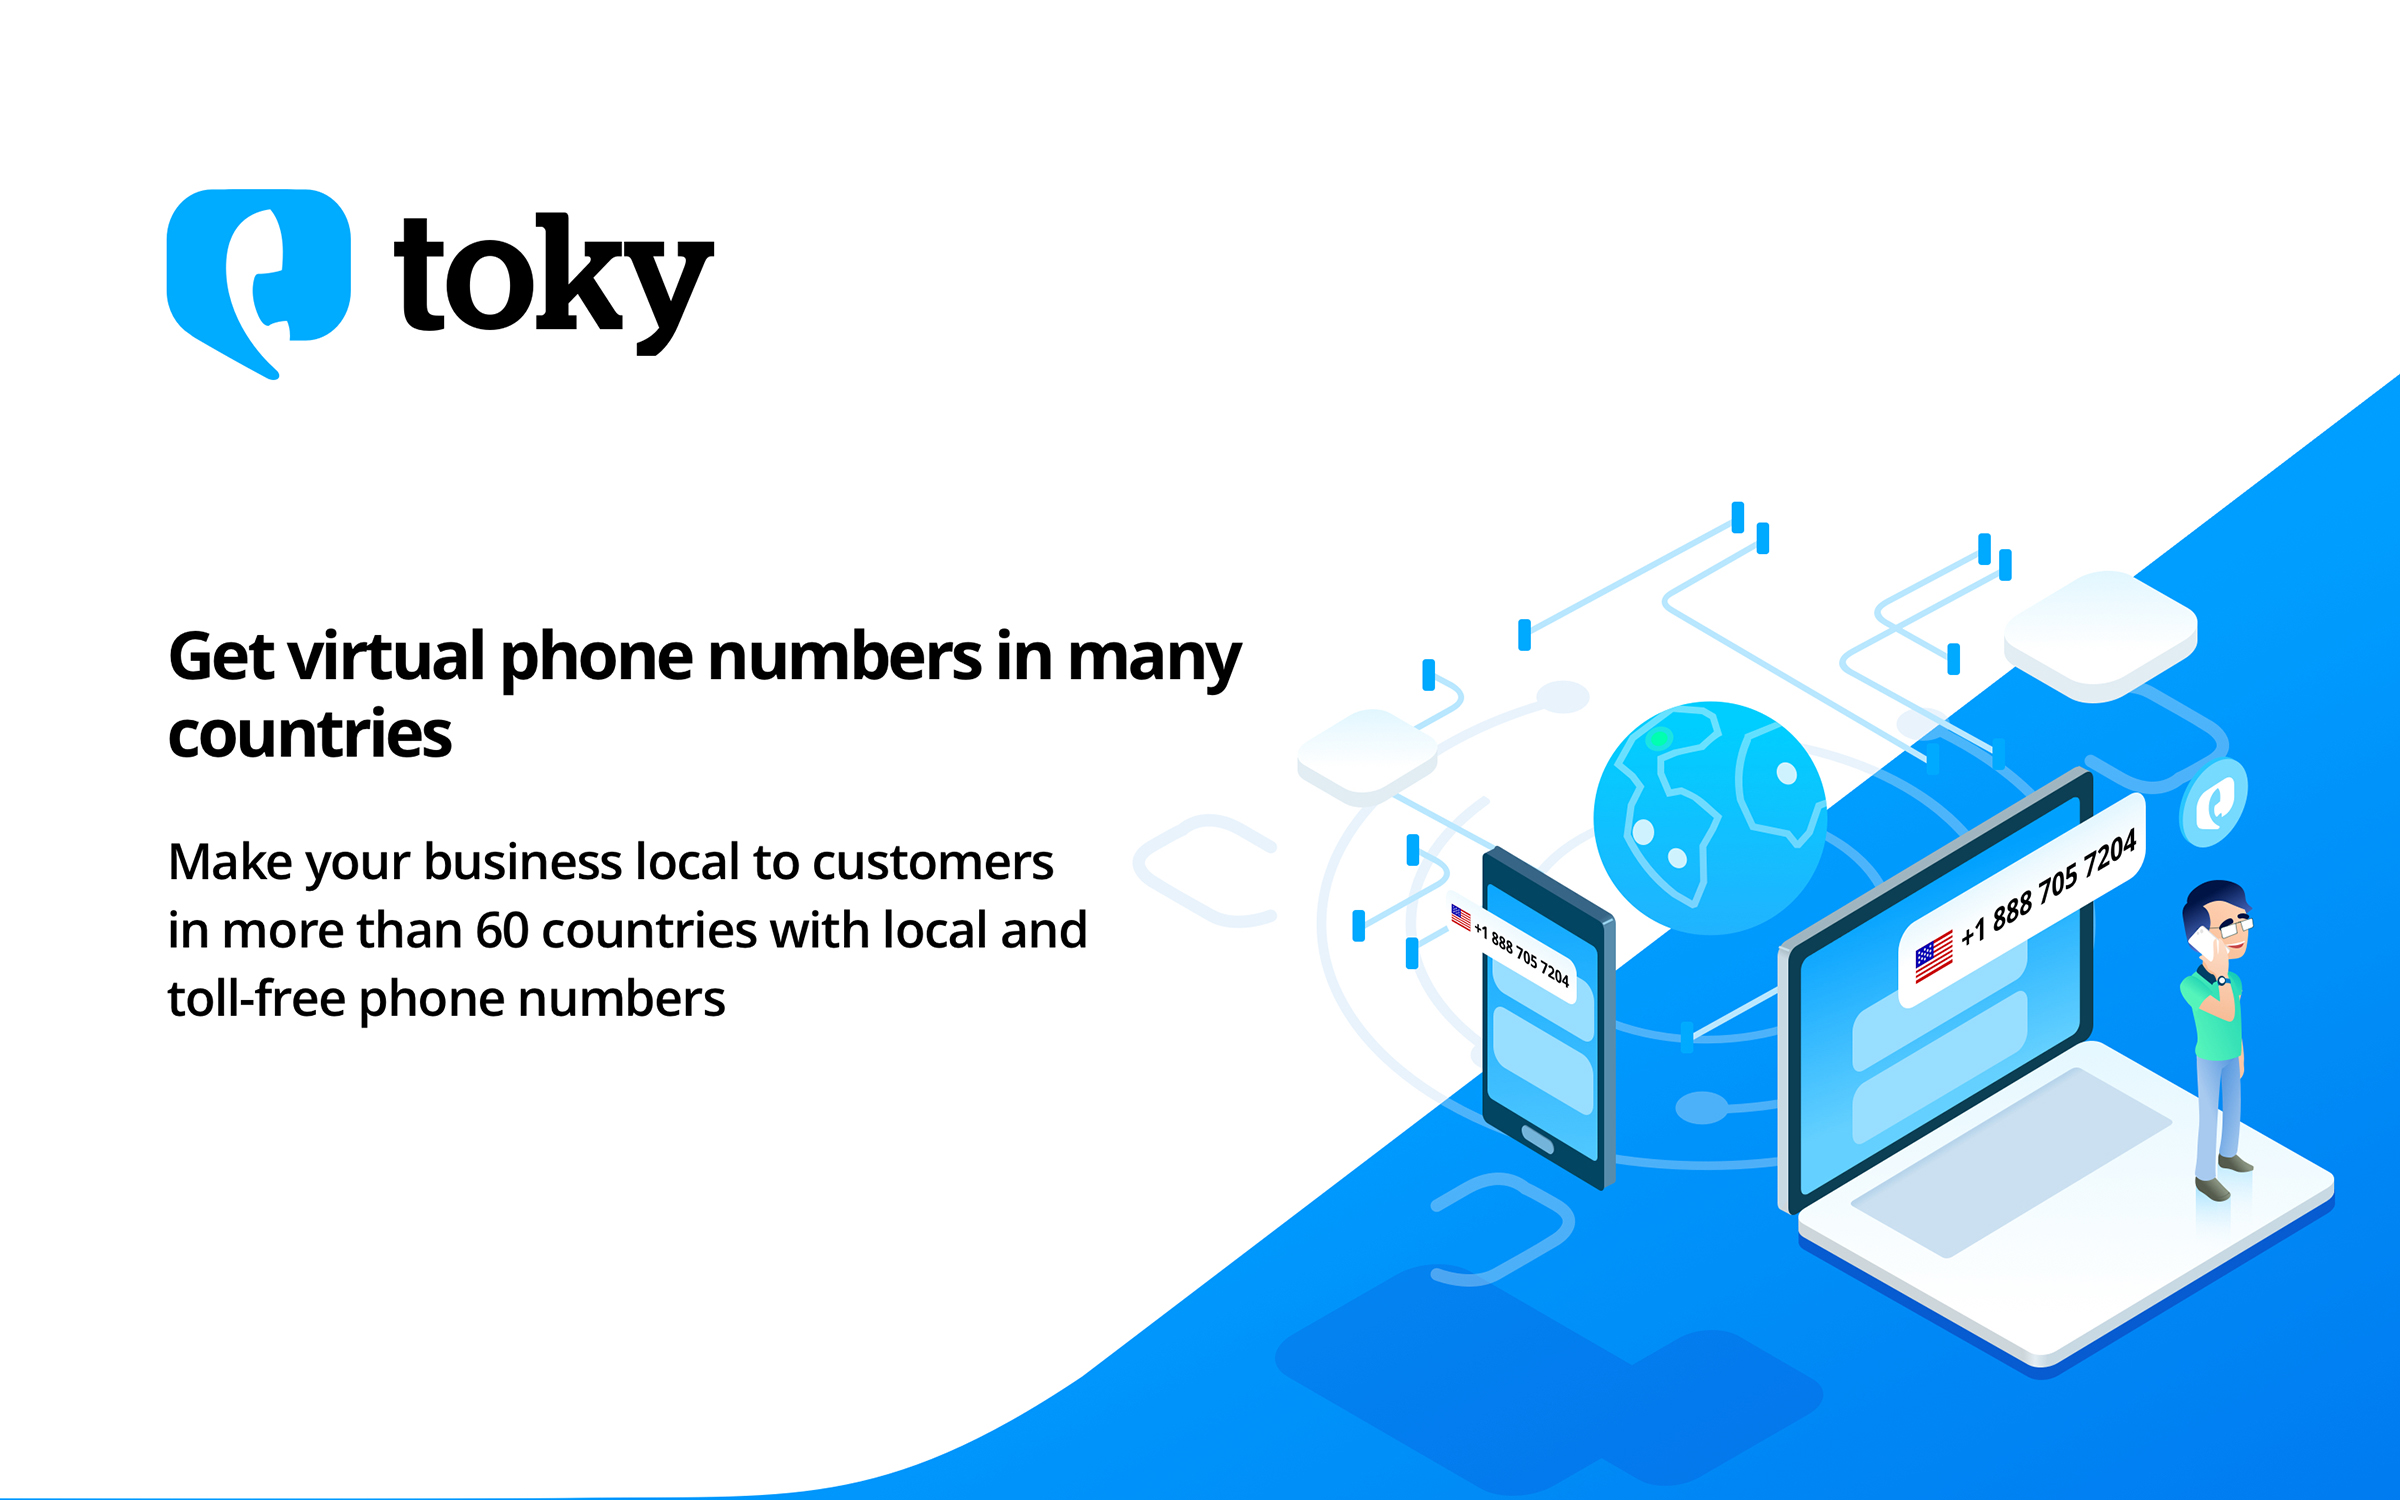 Toky Demo - Get virtual phone numbers in many countries